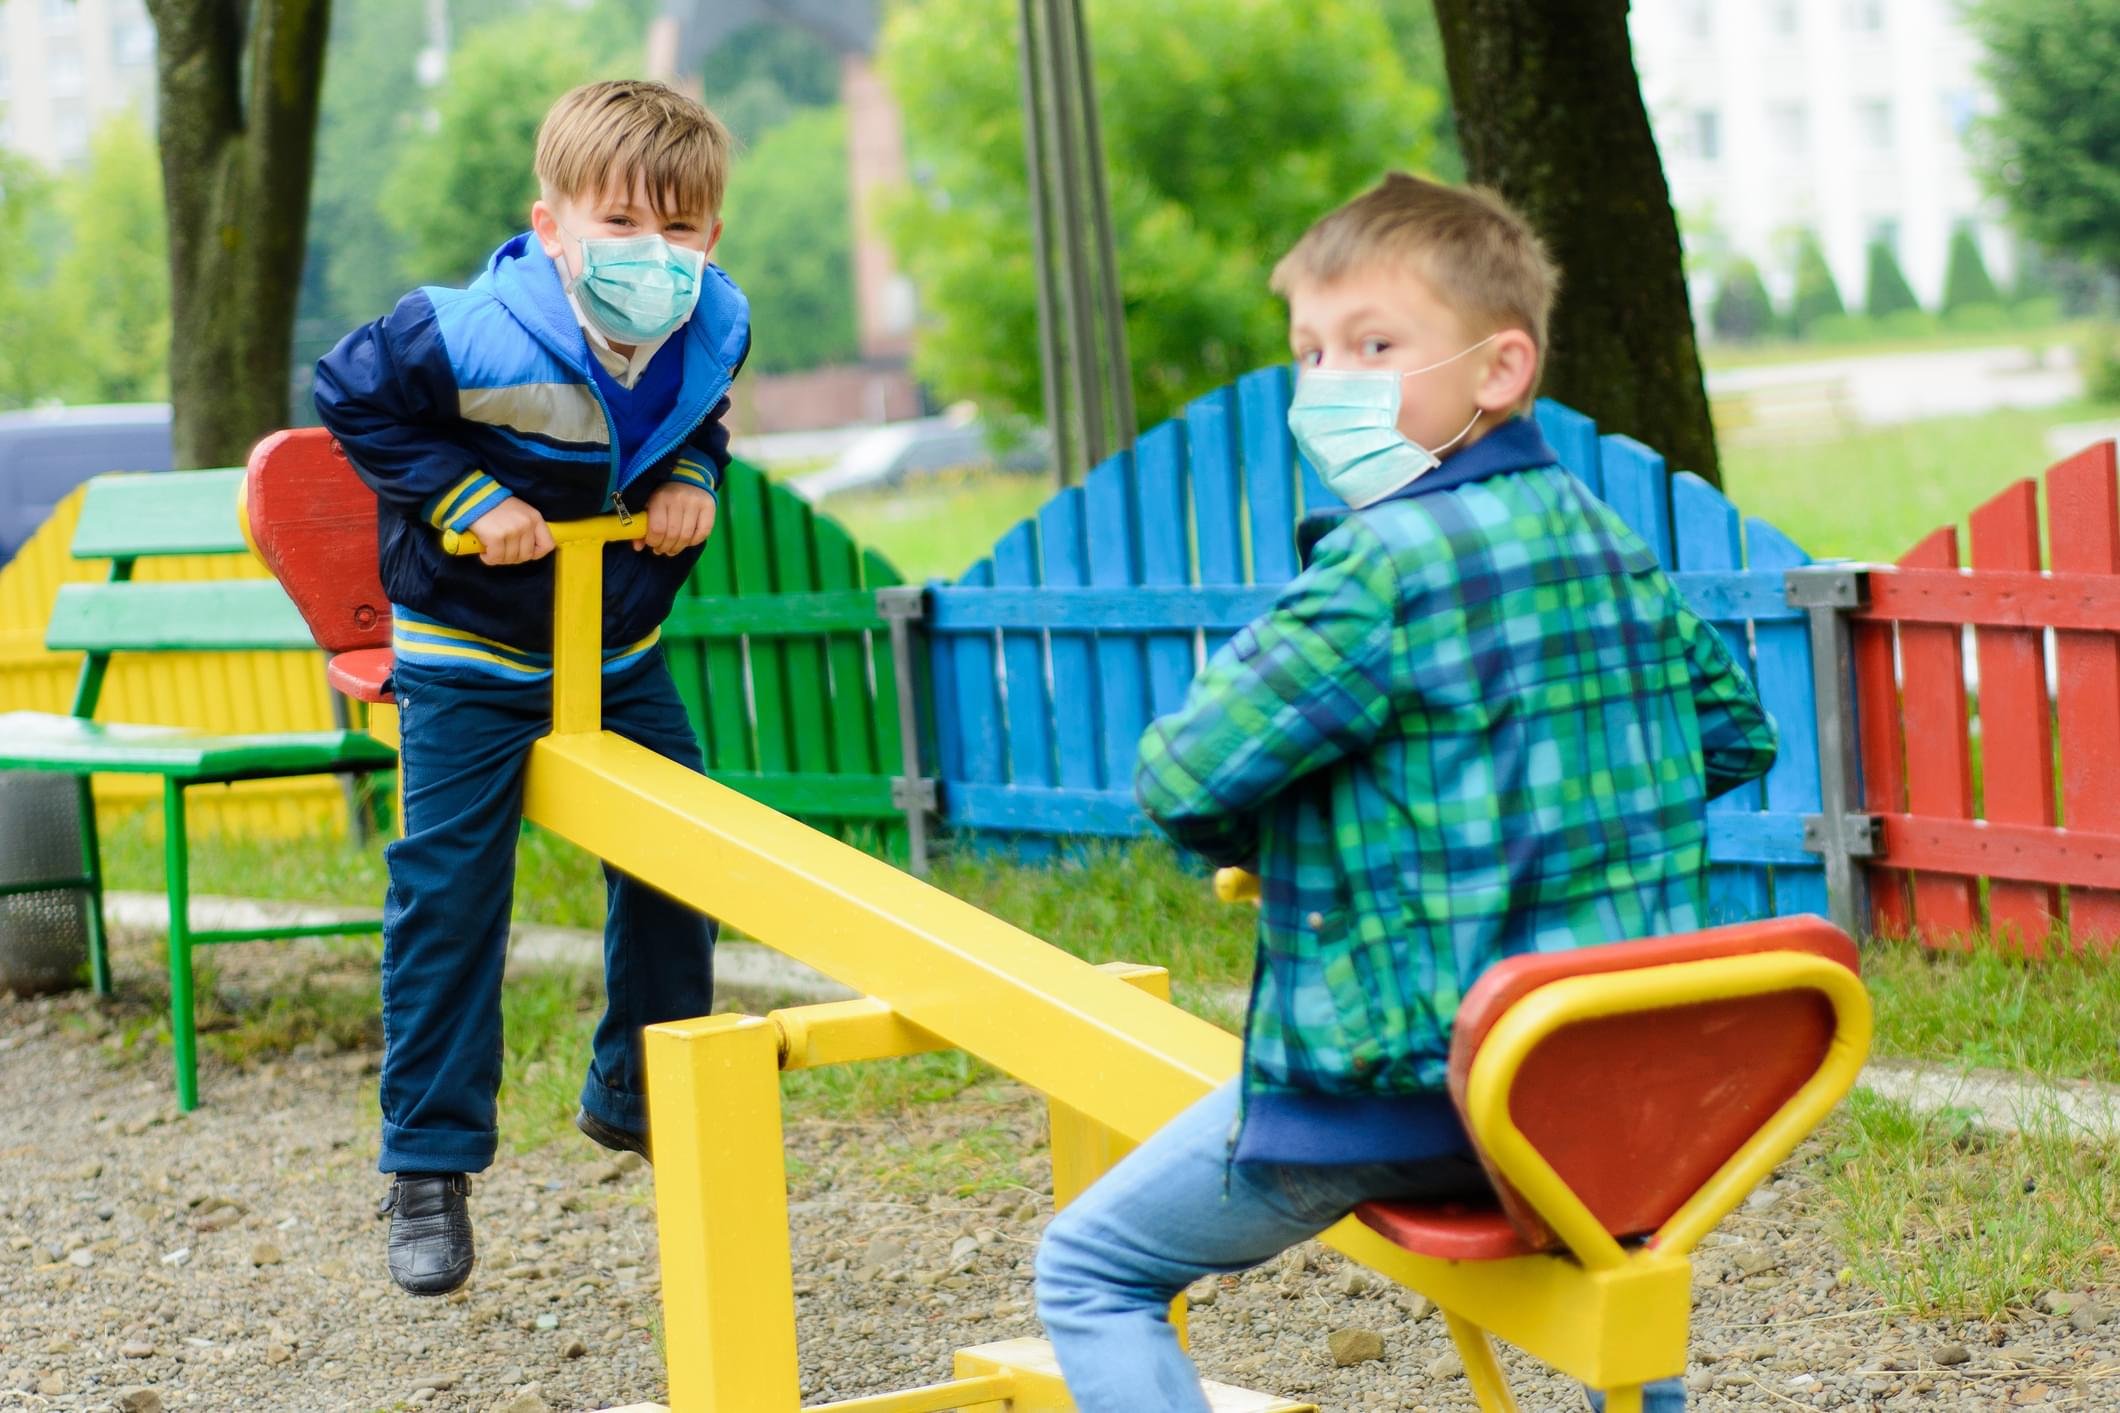 Children school in medical masks play at a quarantine playground during a coronavirus pandemic